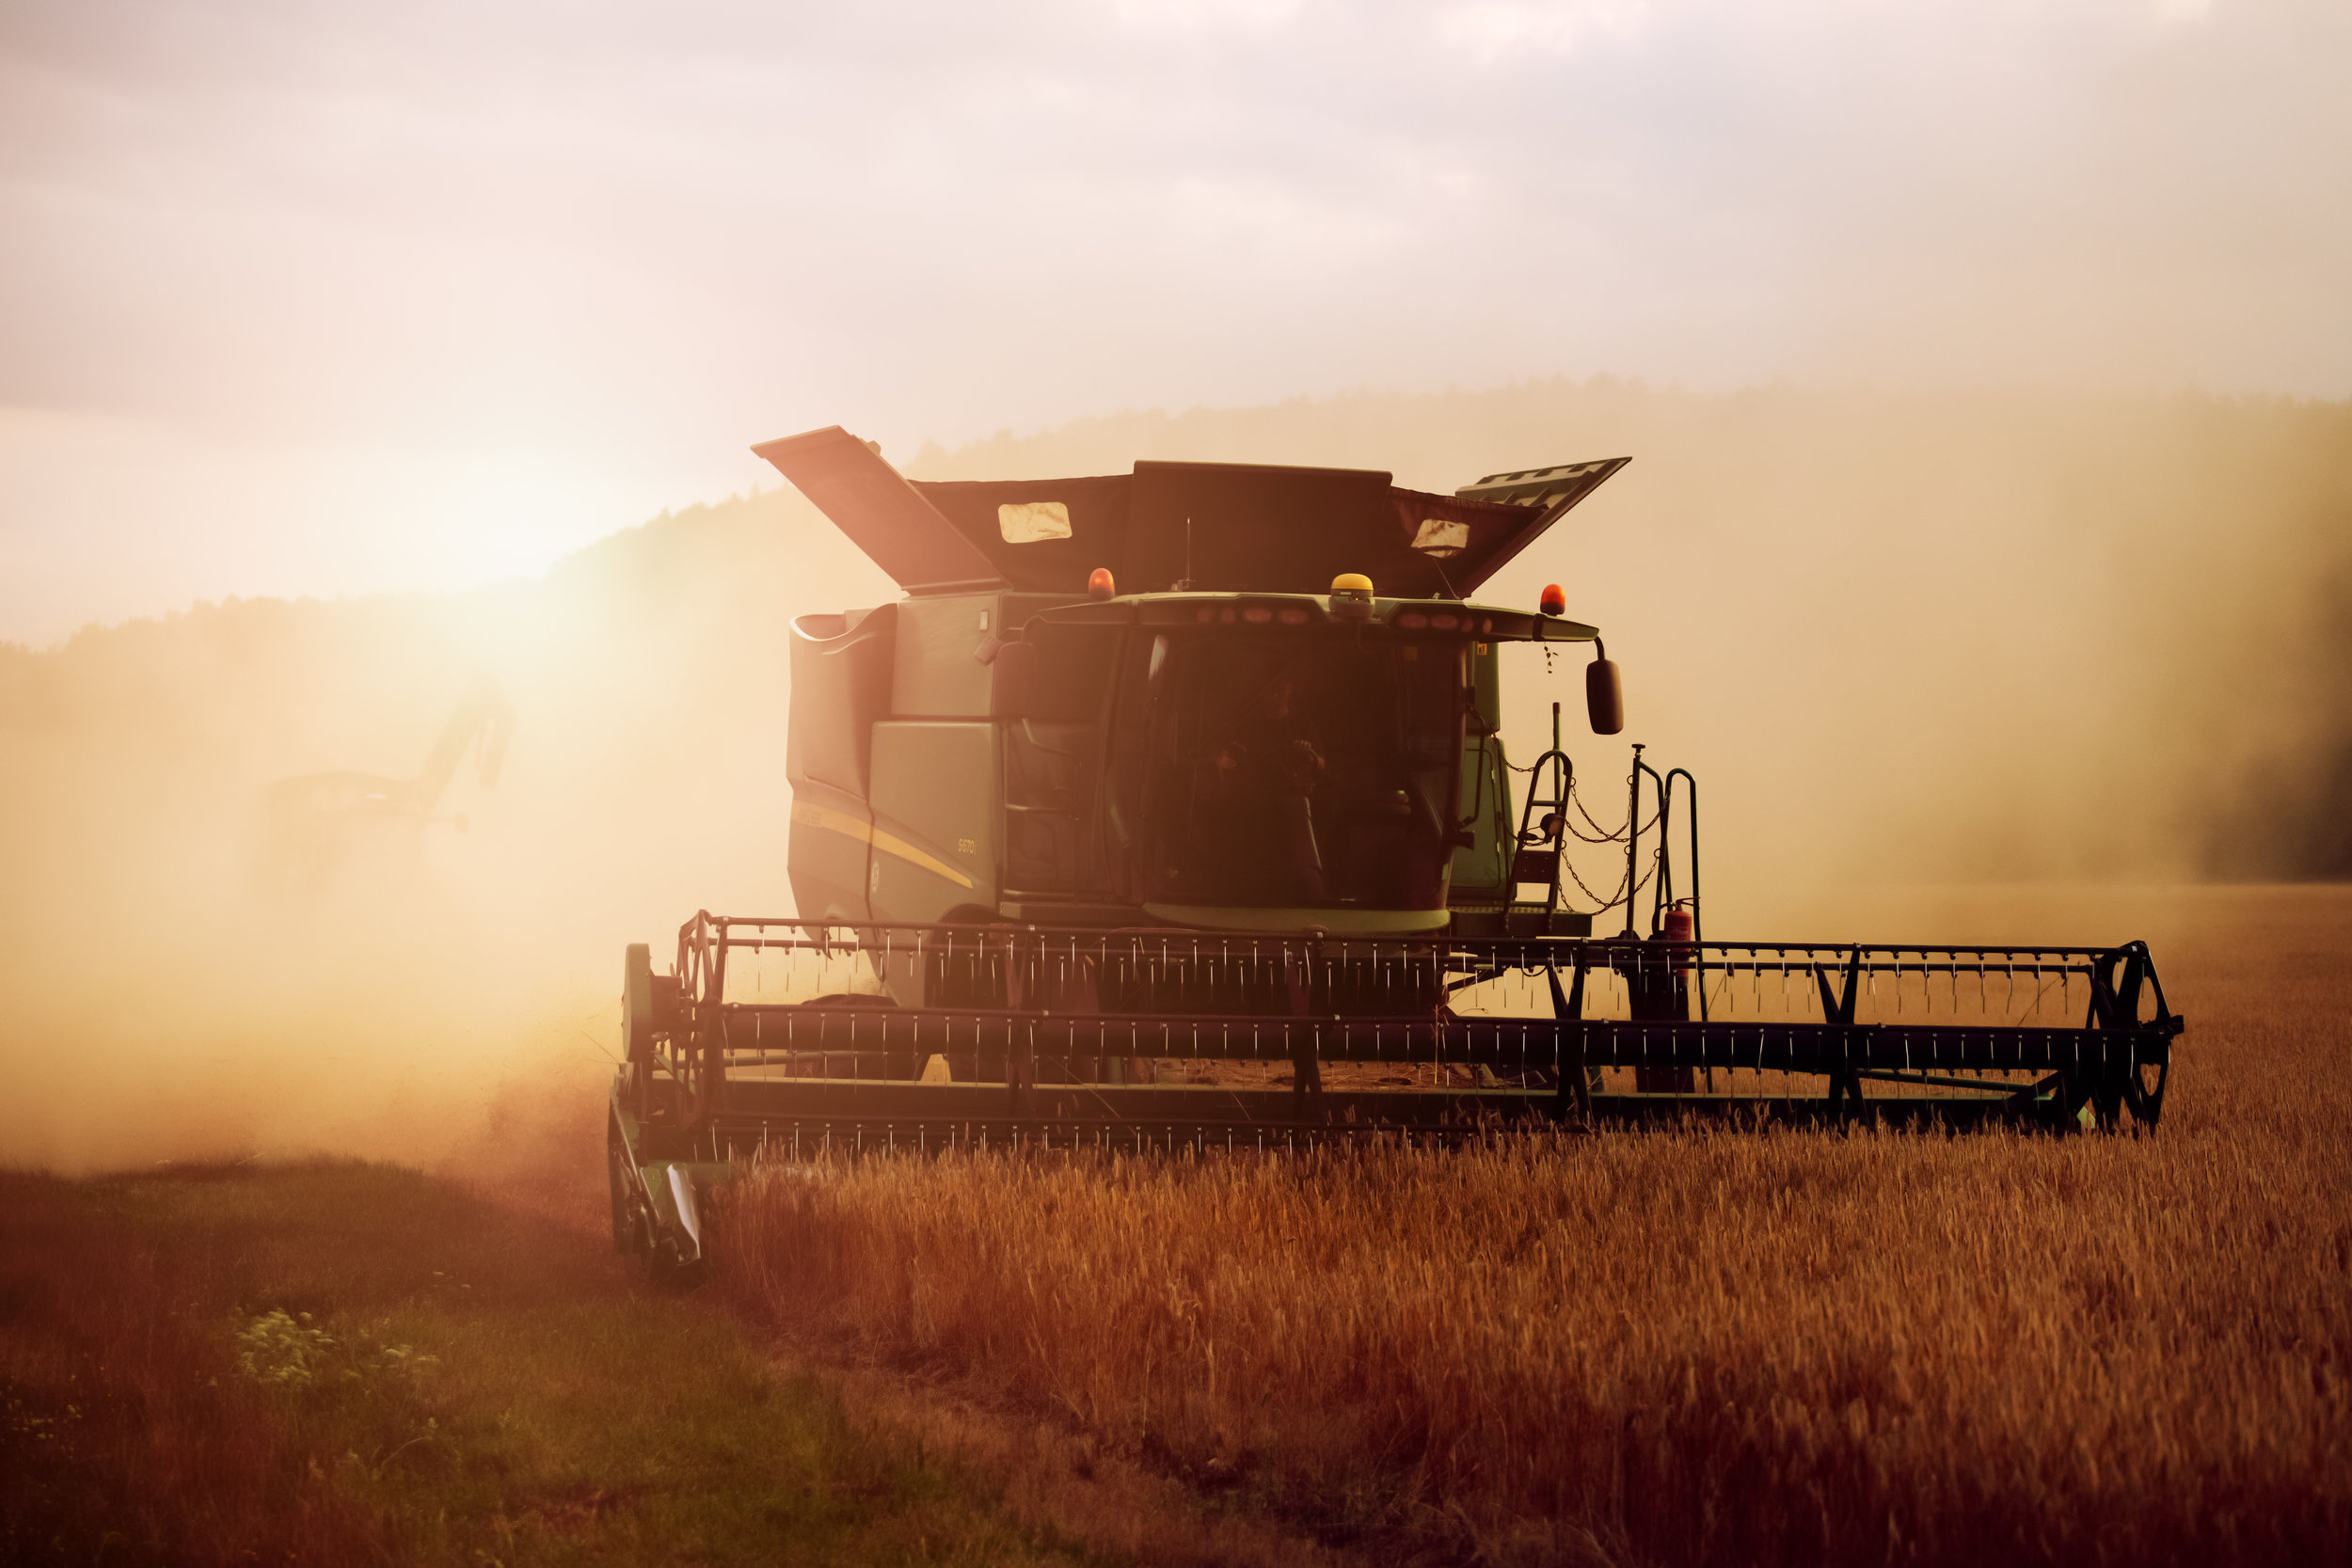 AGRICULTRAL - When farmers have a problem, we offer fast, effective solutions to keep them going strong.